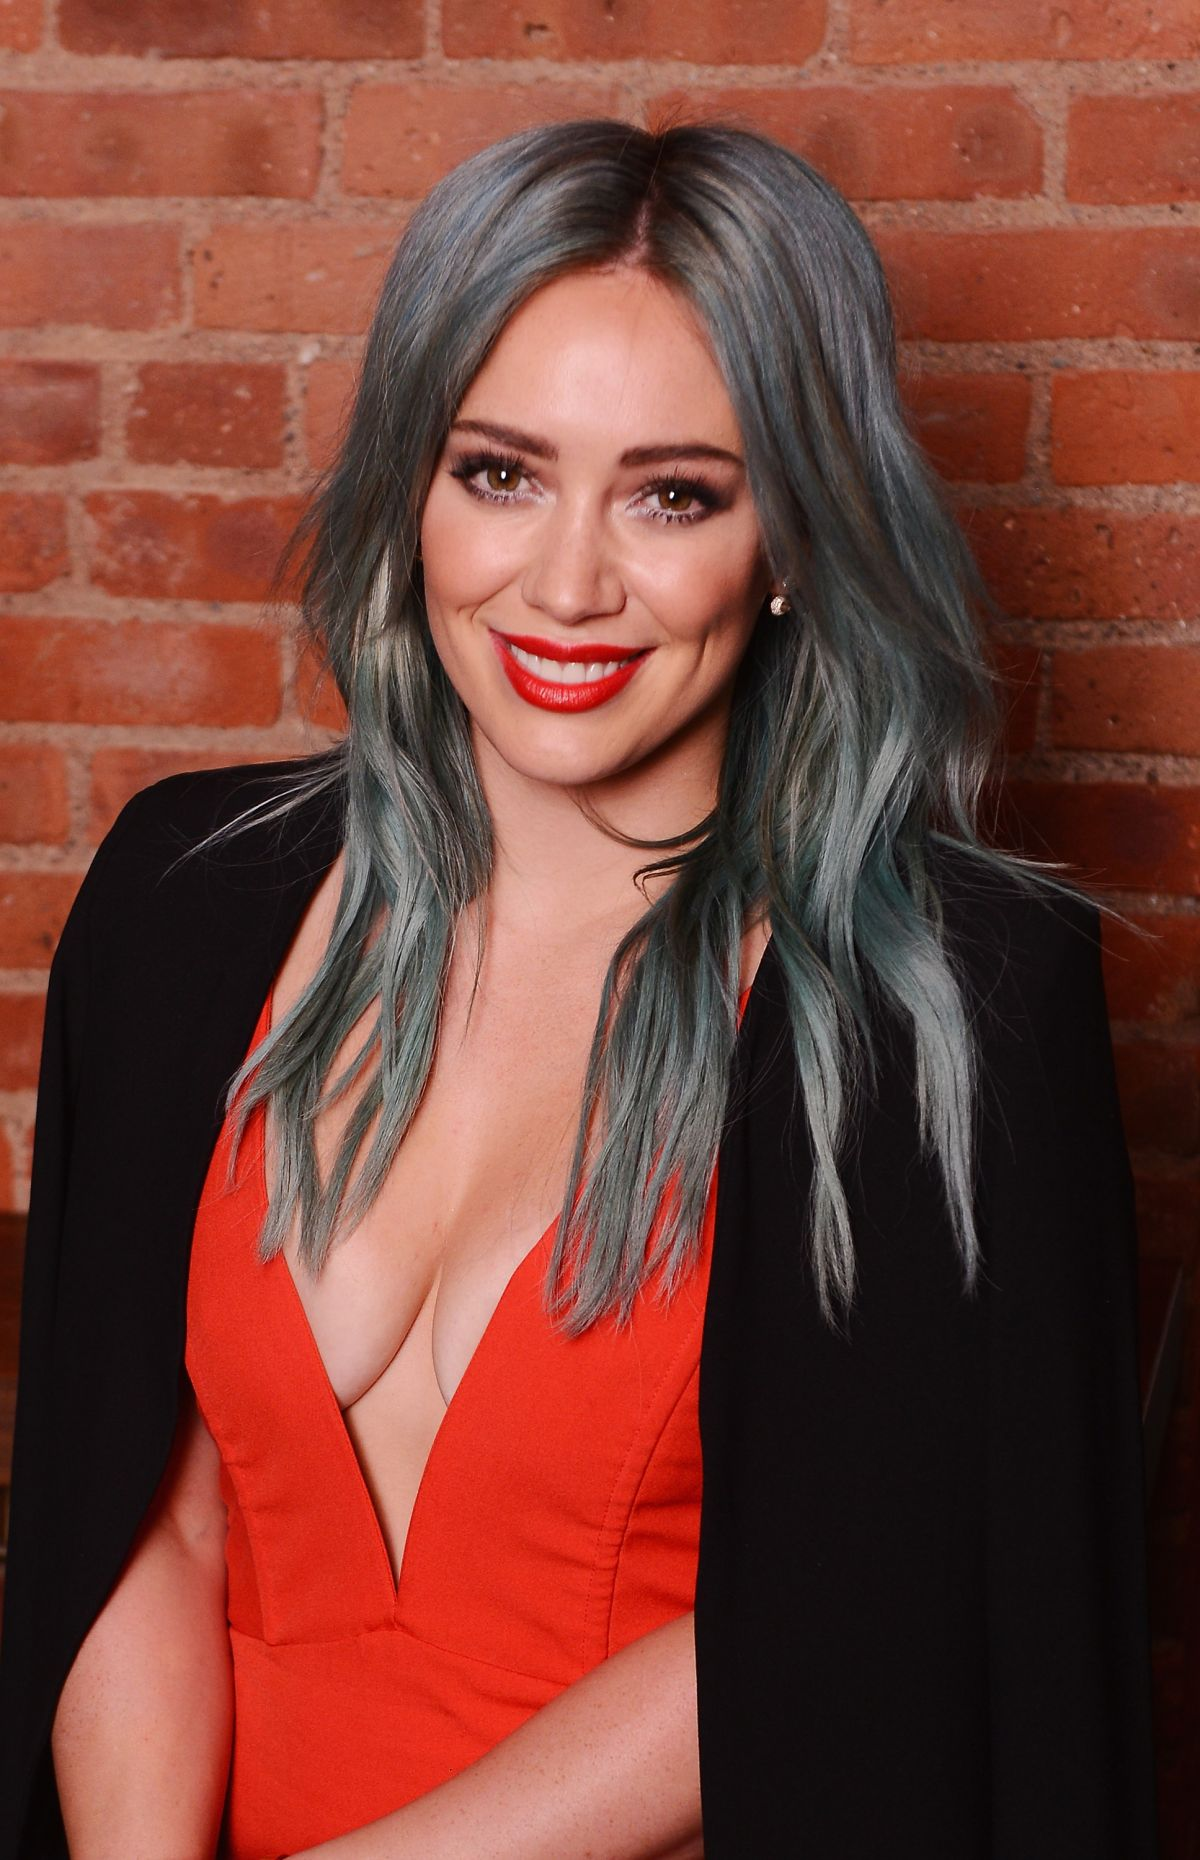 HILARY DUFF at Younger Premiere in New York - HawtCelebs